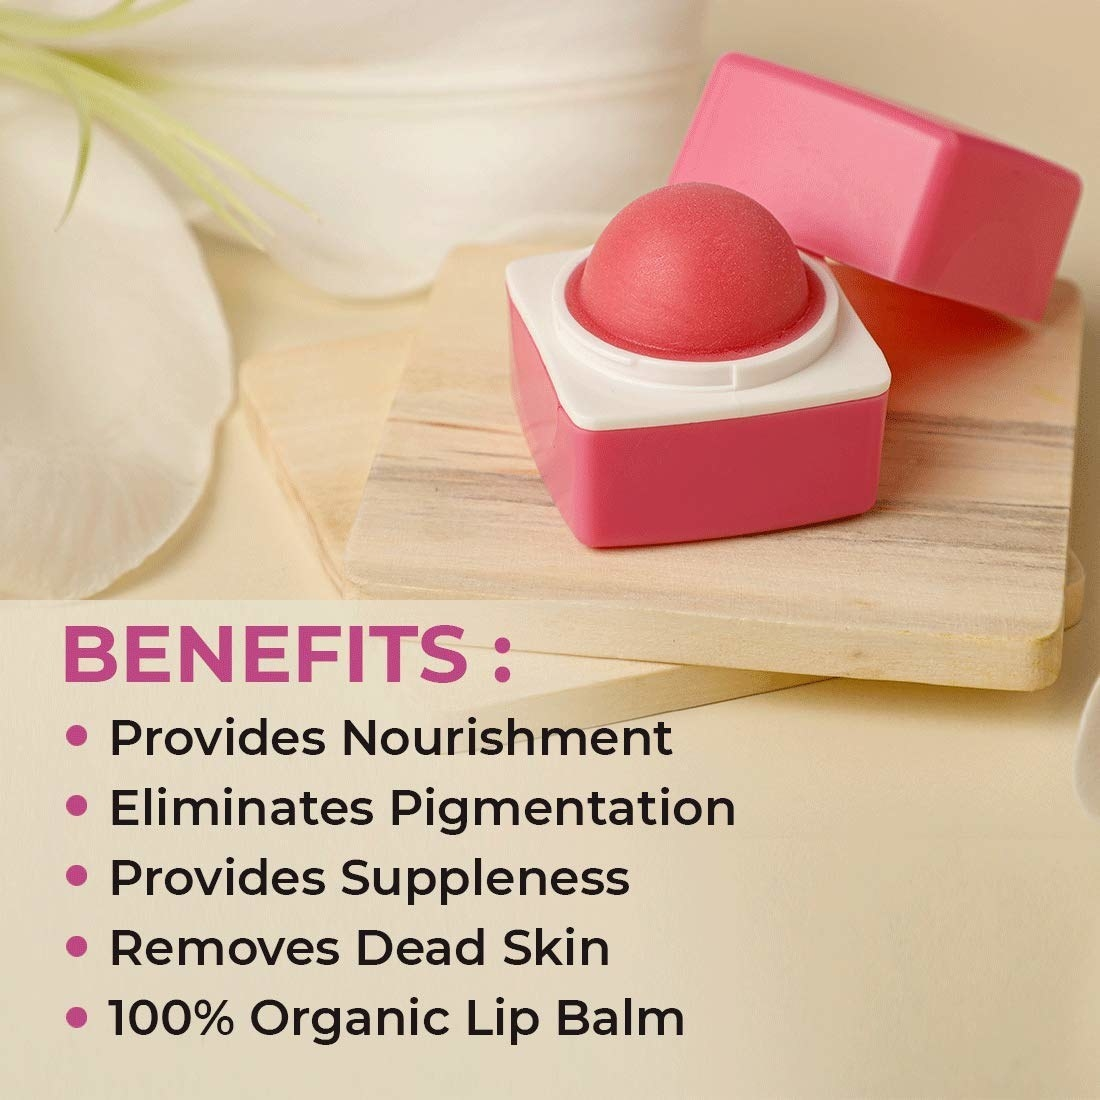 The lip balm on a wooden object with benefits of it listed below